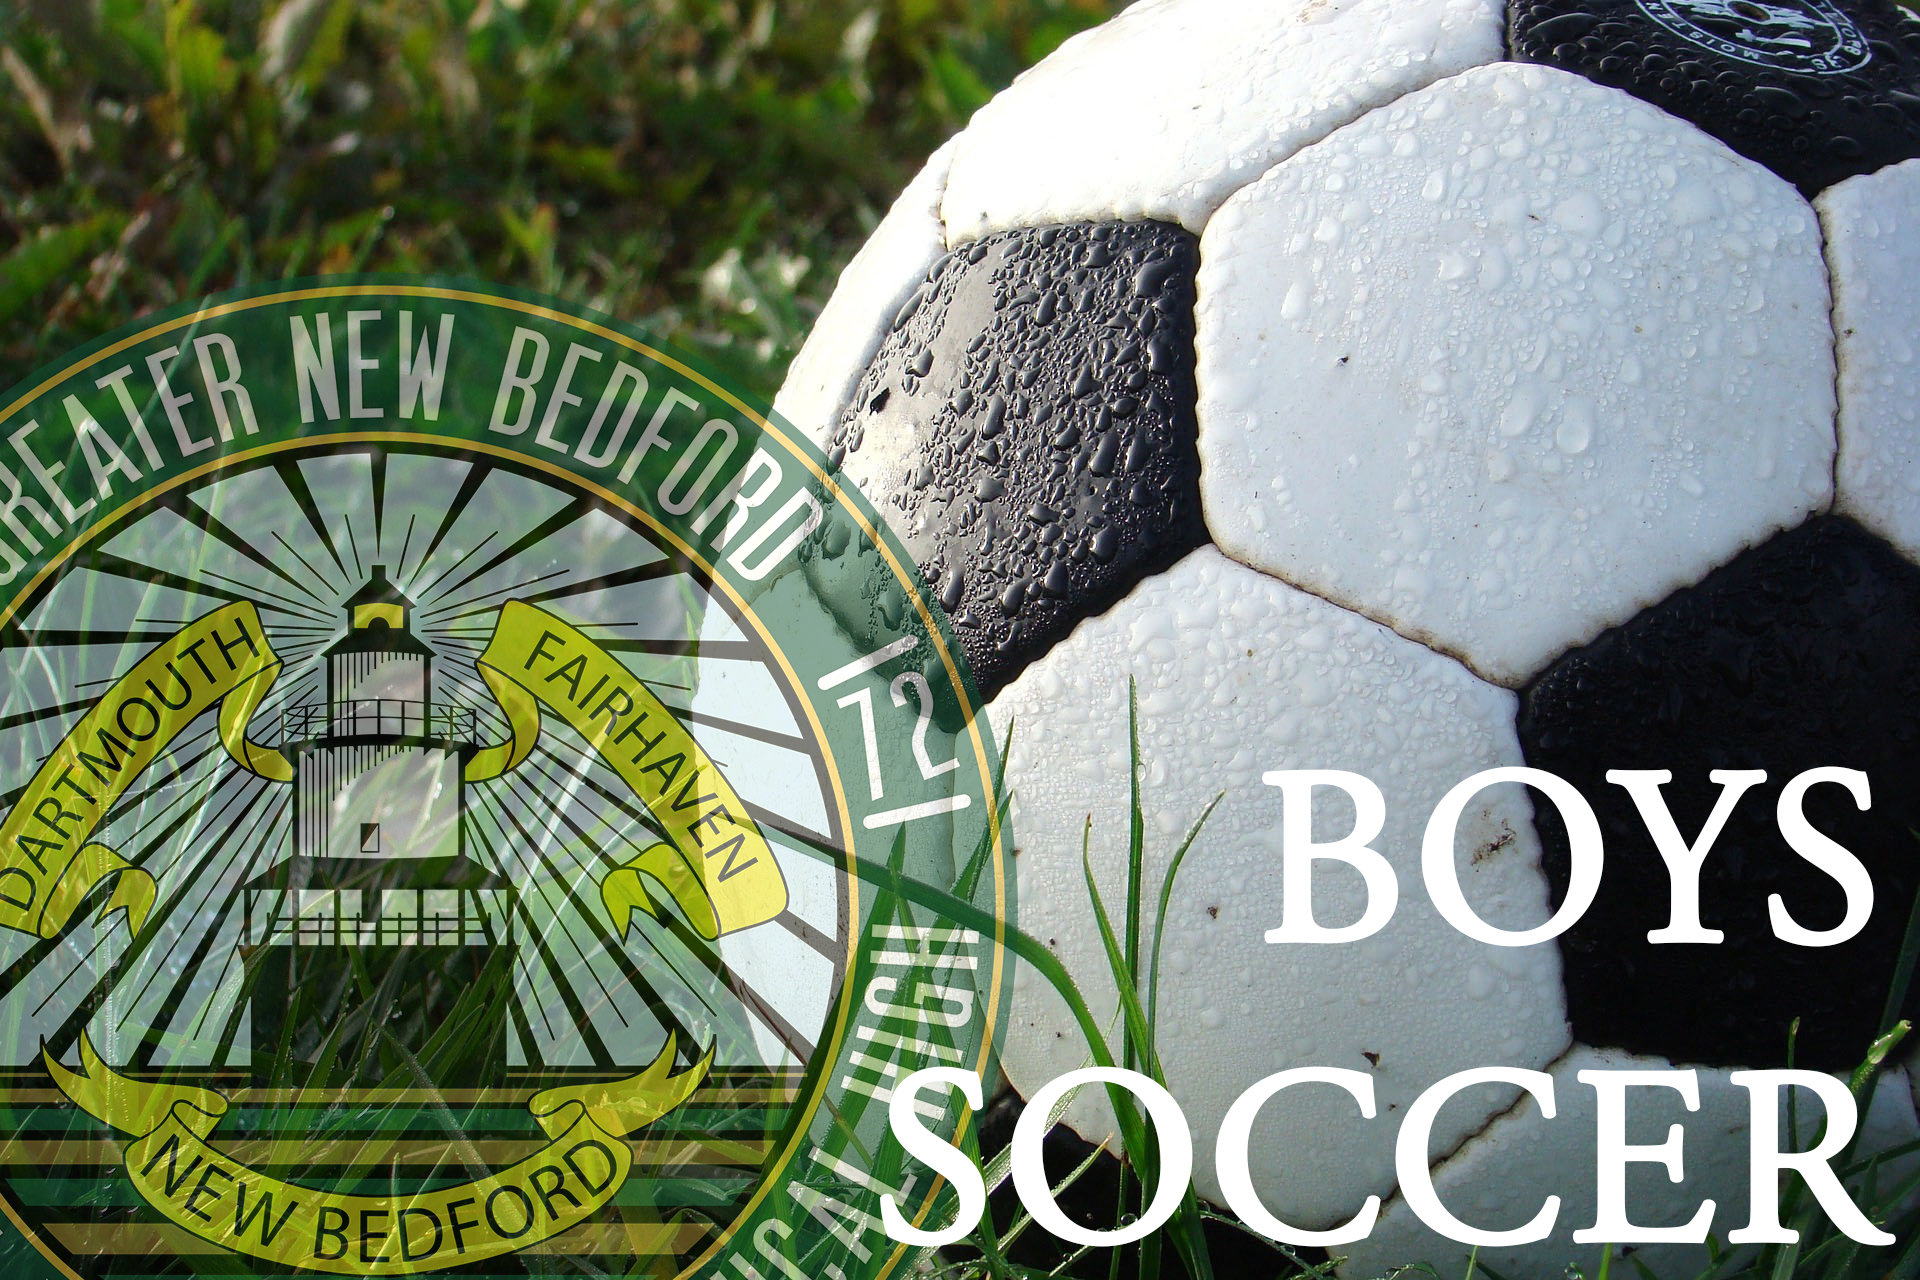 Fall Sports Boys Soccer image with faded gnbvt logo on left